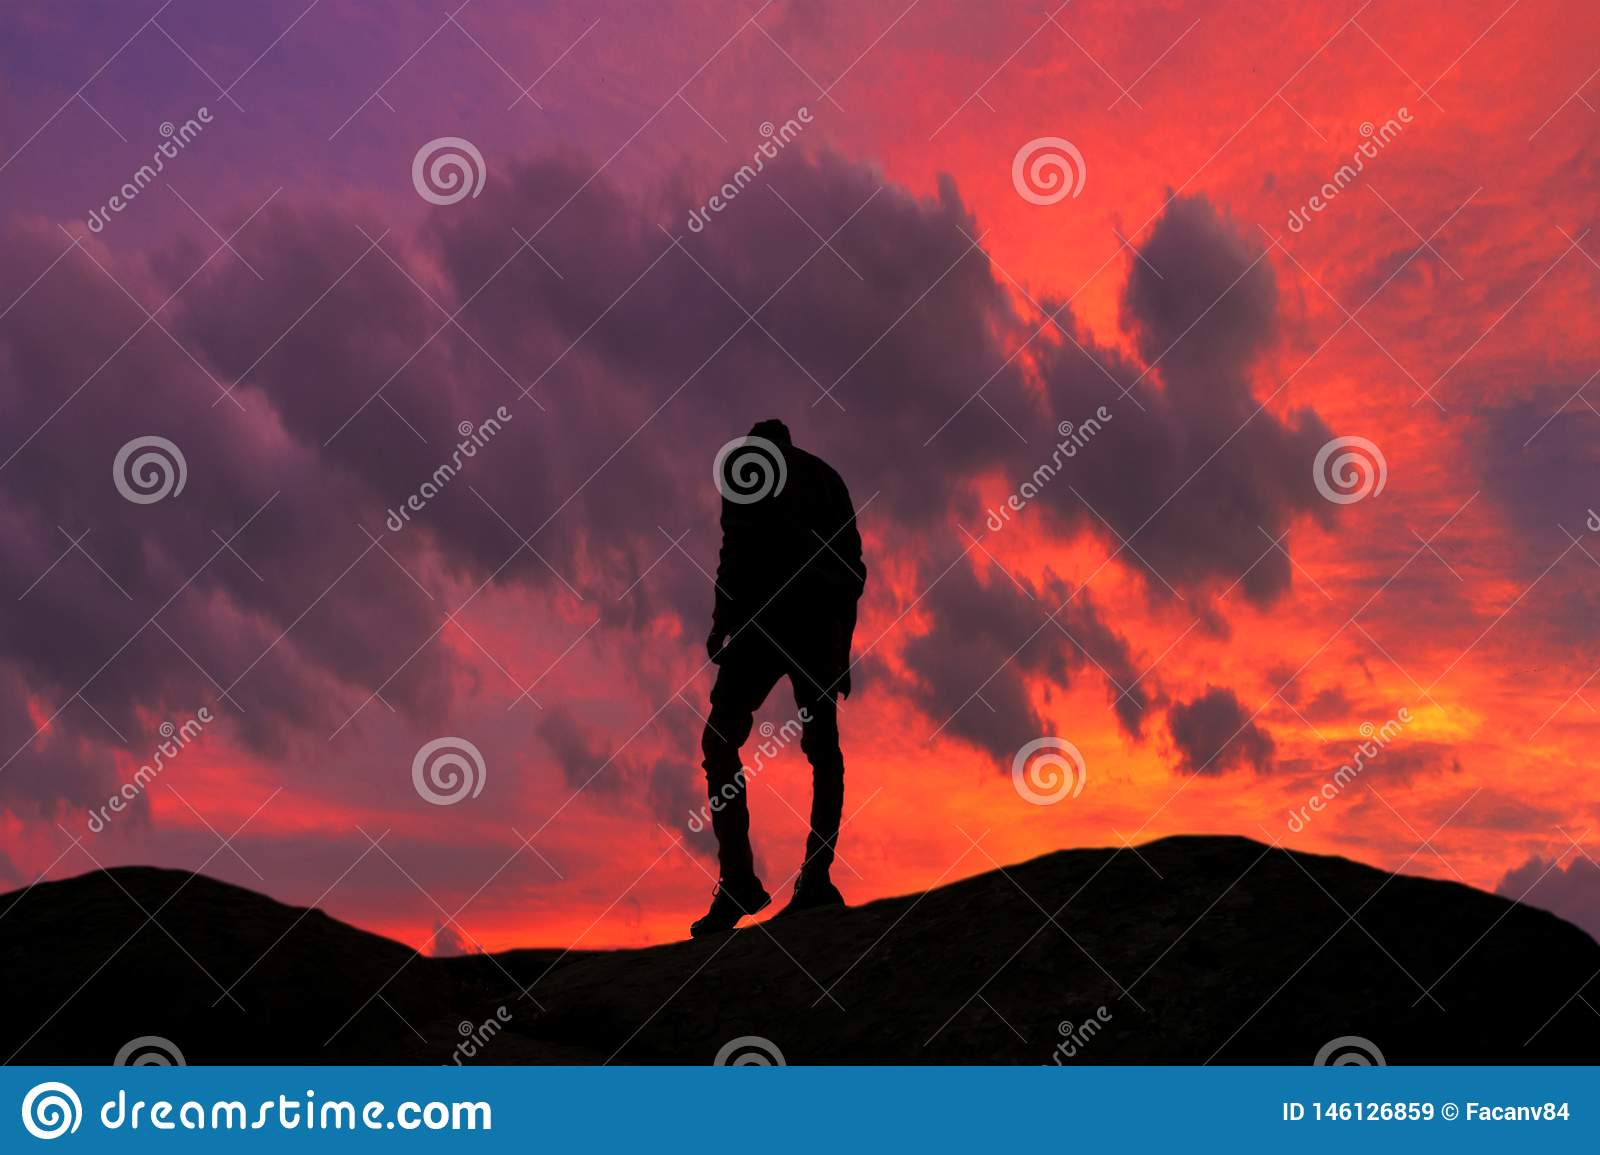 Interesting detail. A silhouette of a young guy climbing to his goal. Very nice sunset and red sky in the background.